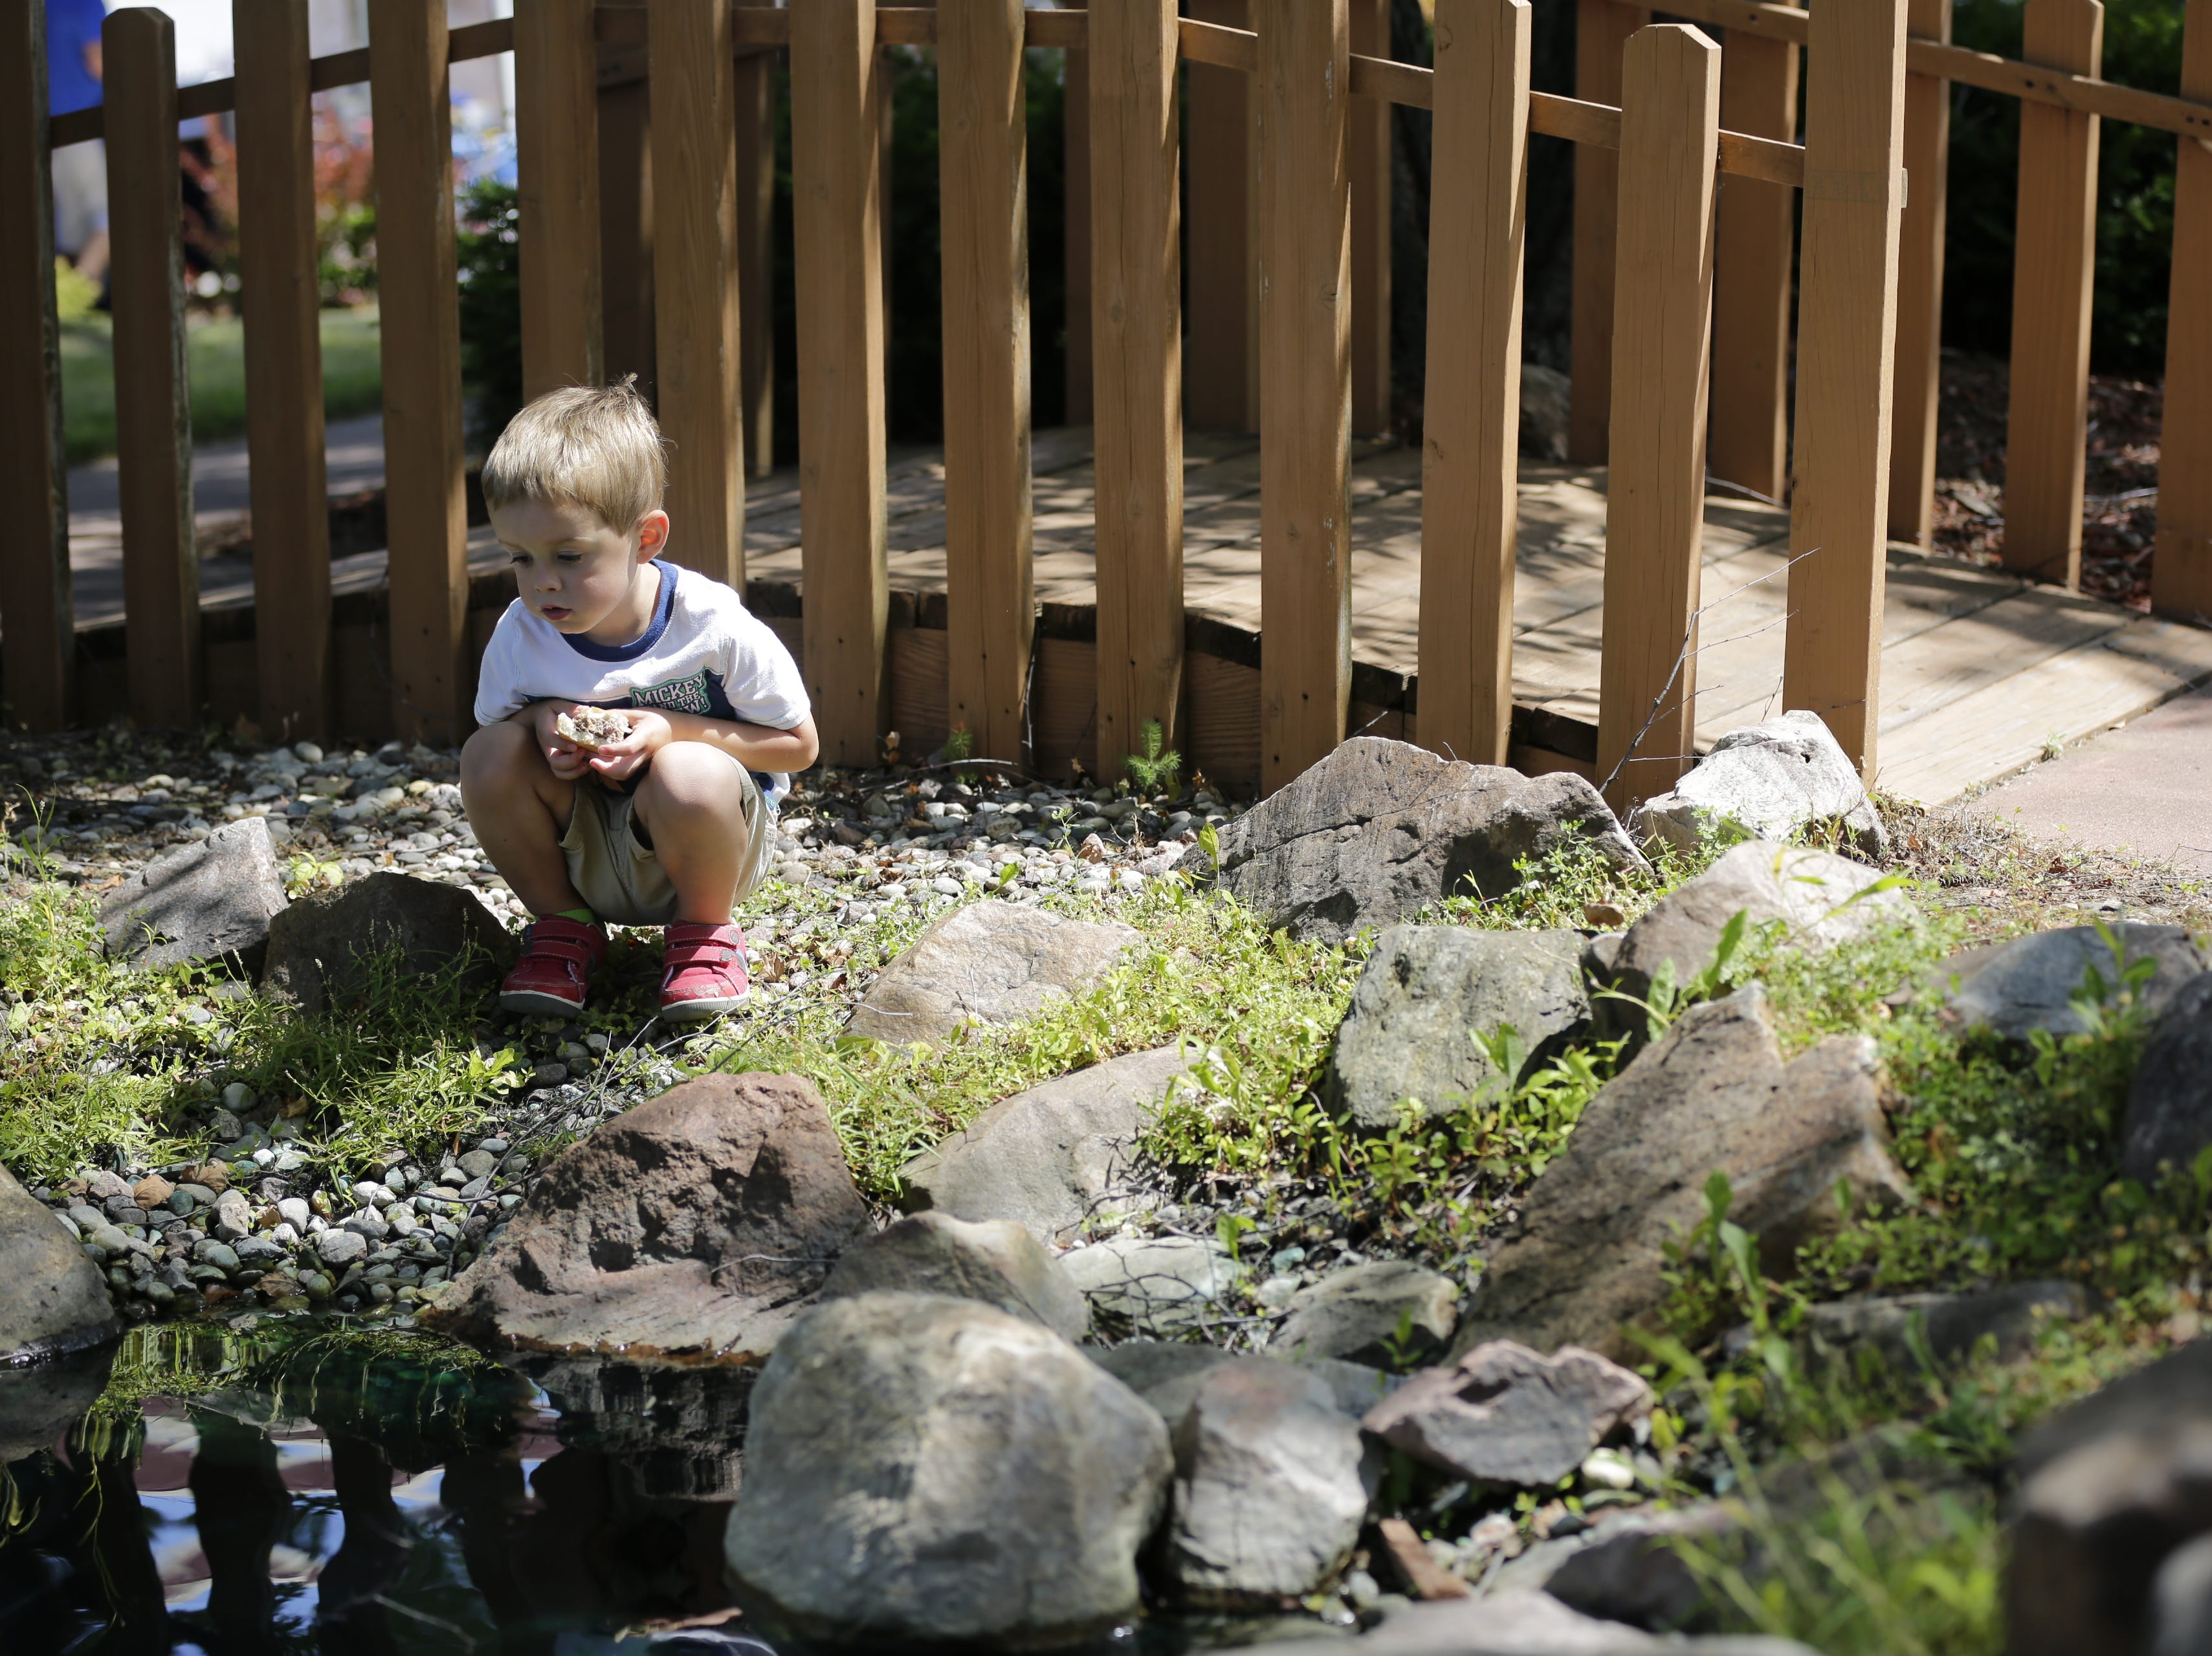 James Neuens, 3, eats a hamburger and watches the water in the pond next to City Hall during Hub City Days in downtown Marshfield Saturday, July 28, 2018.